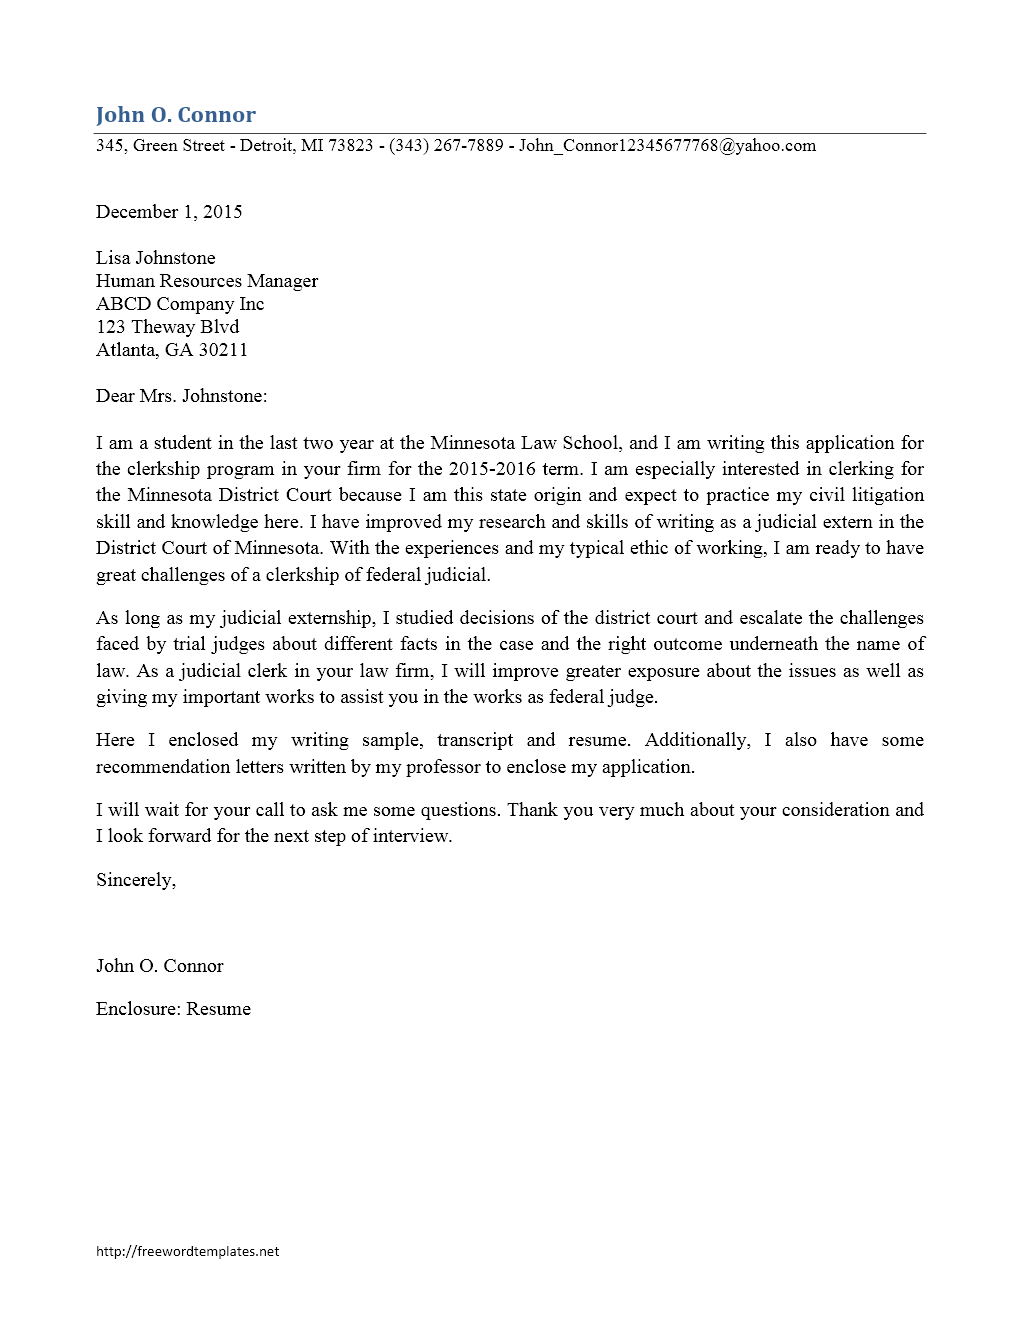 letter wordtemplates net clerkship cover letter